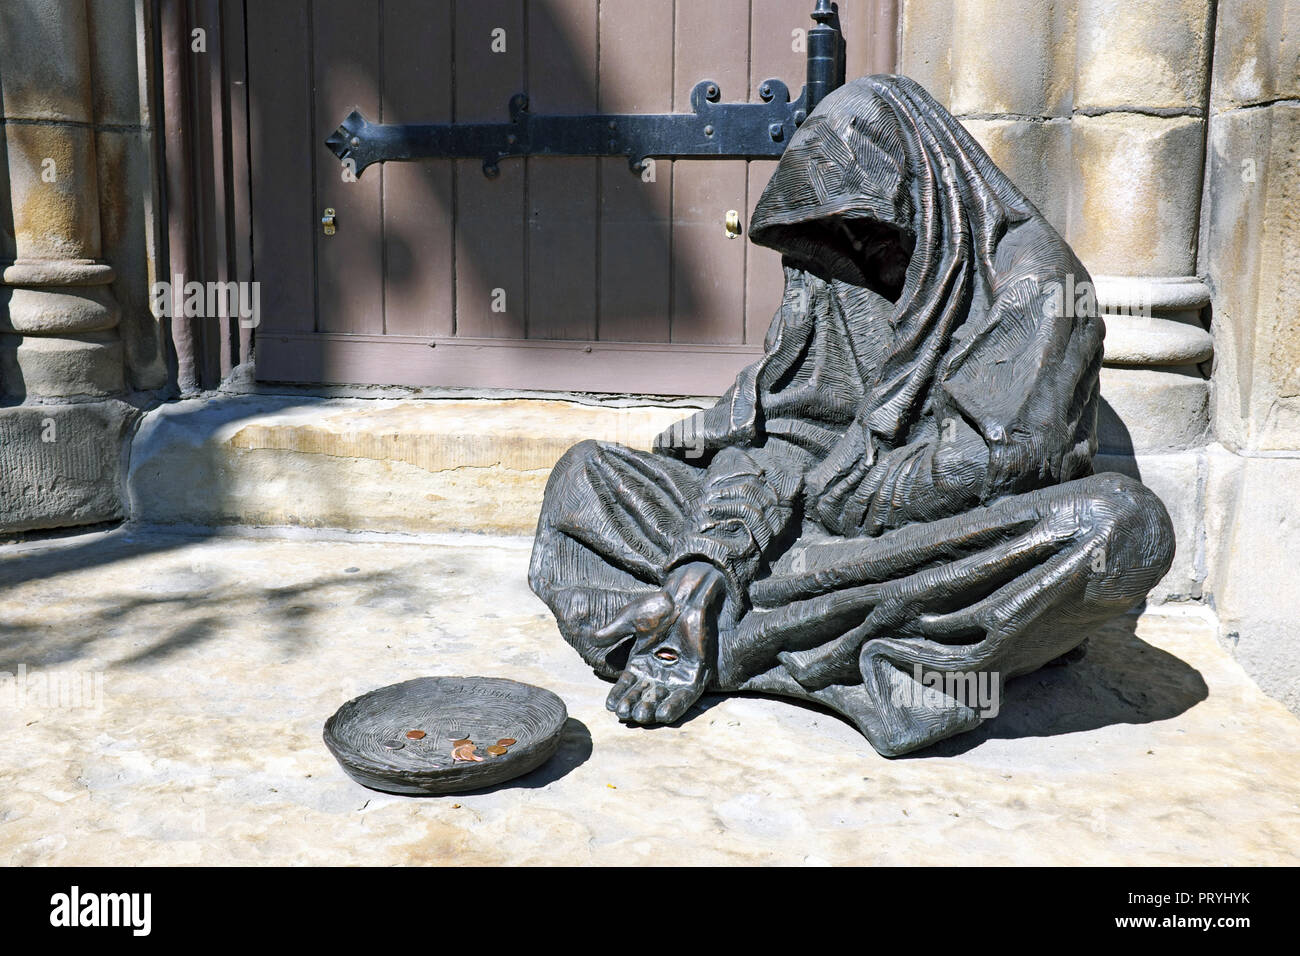 Jesus the beggar sculpture based on Matthew 25:40, created by Timothy Schmalz, sits outside the Old Stone Church in Cleveland, Ohio, USA. - Stock Image